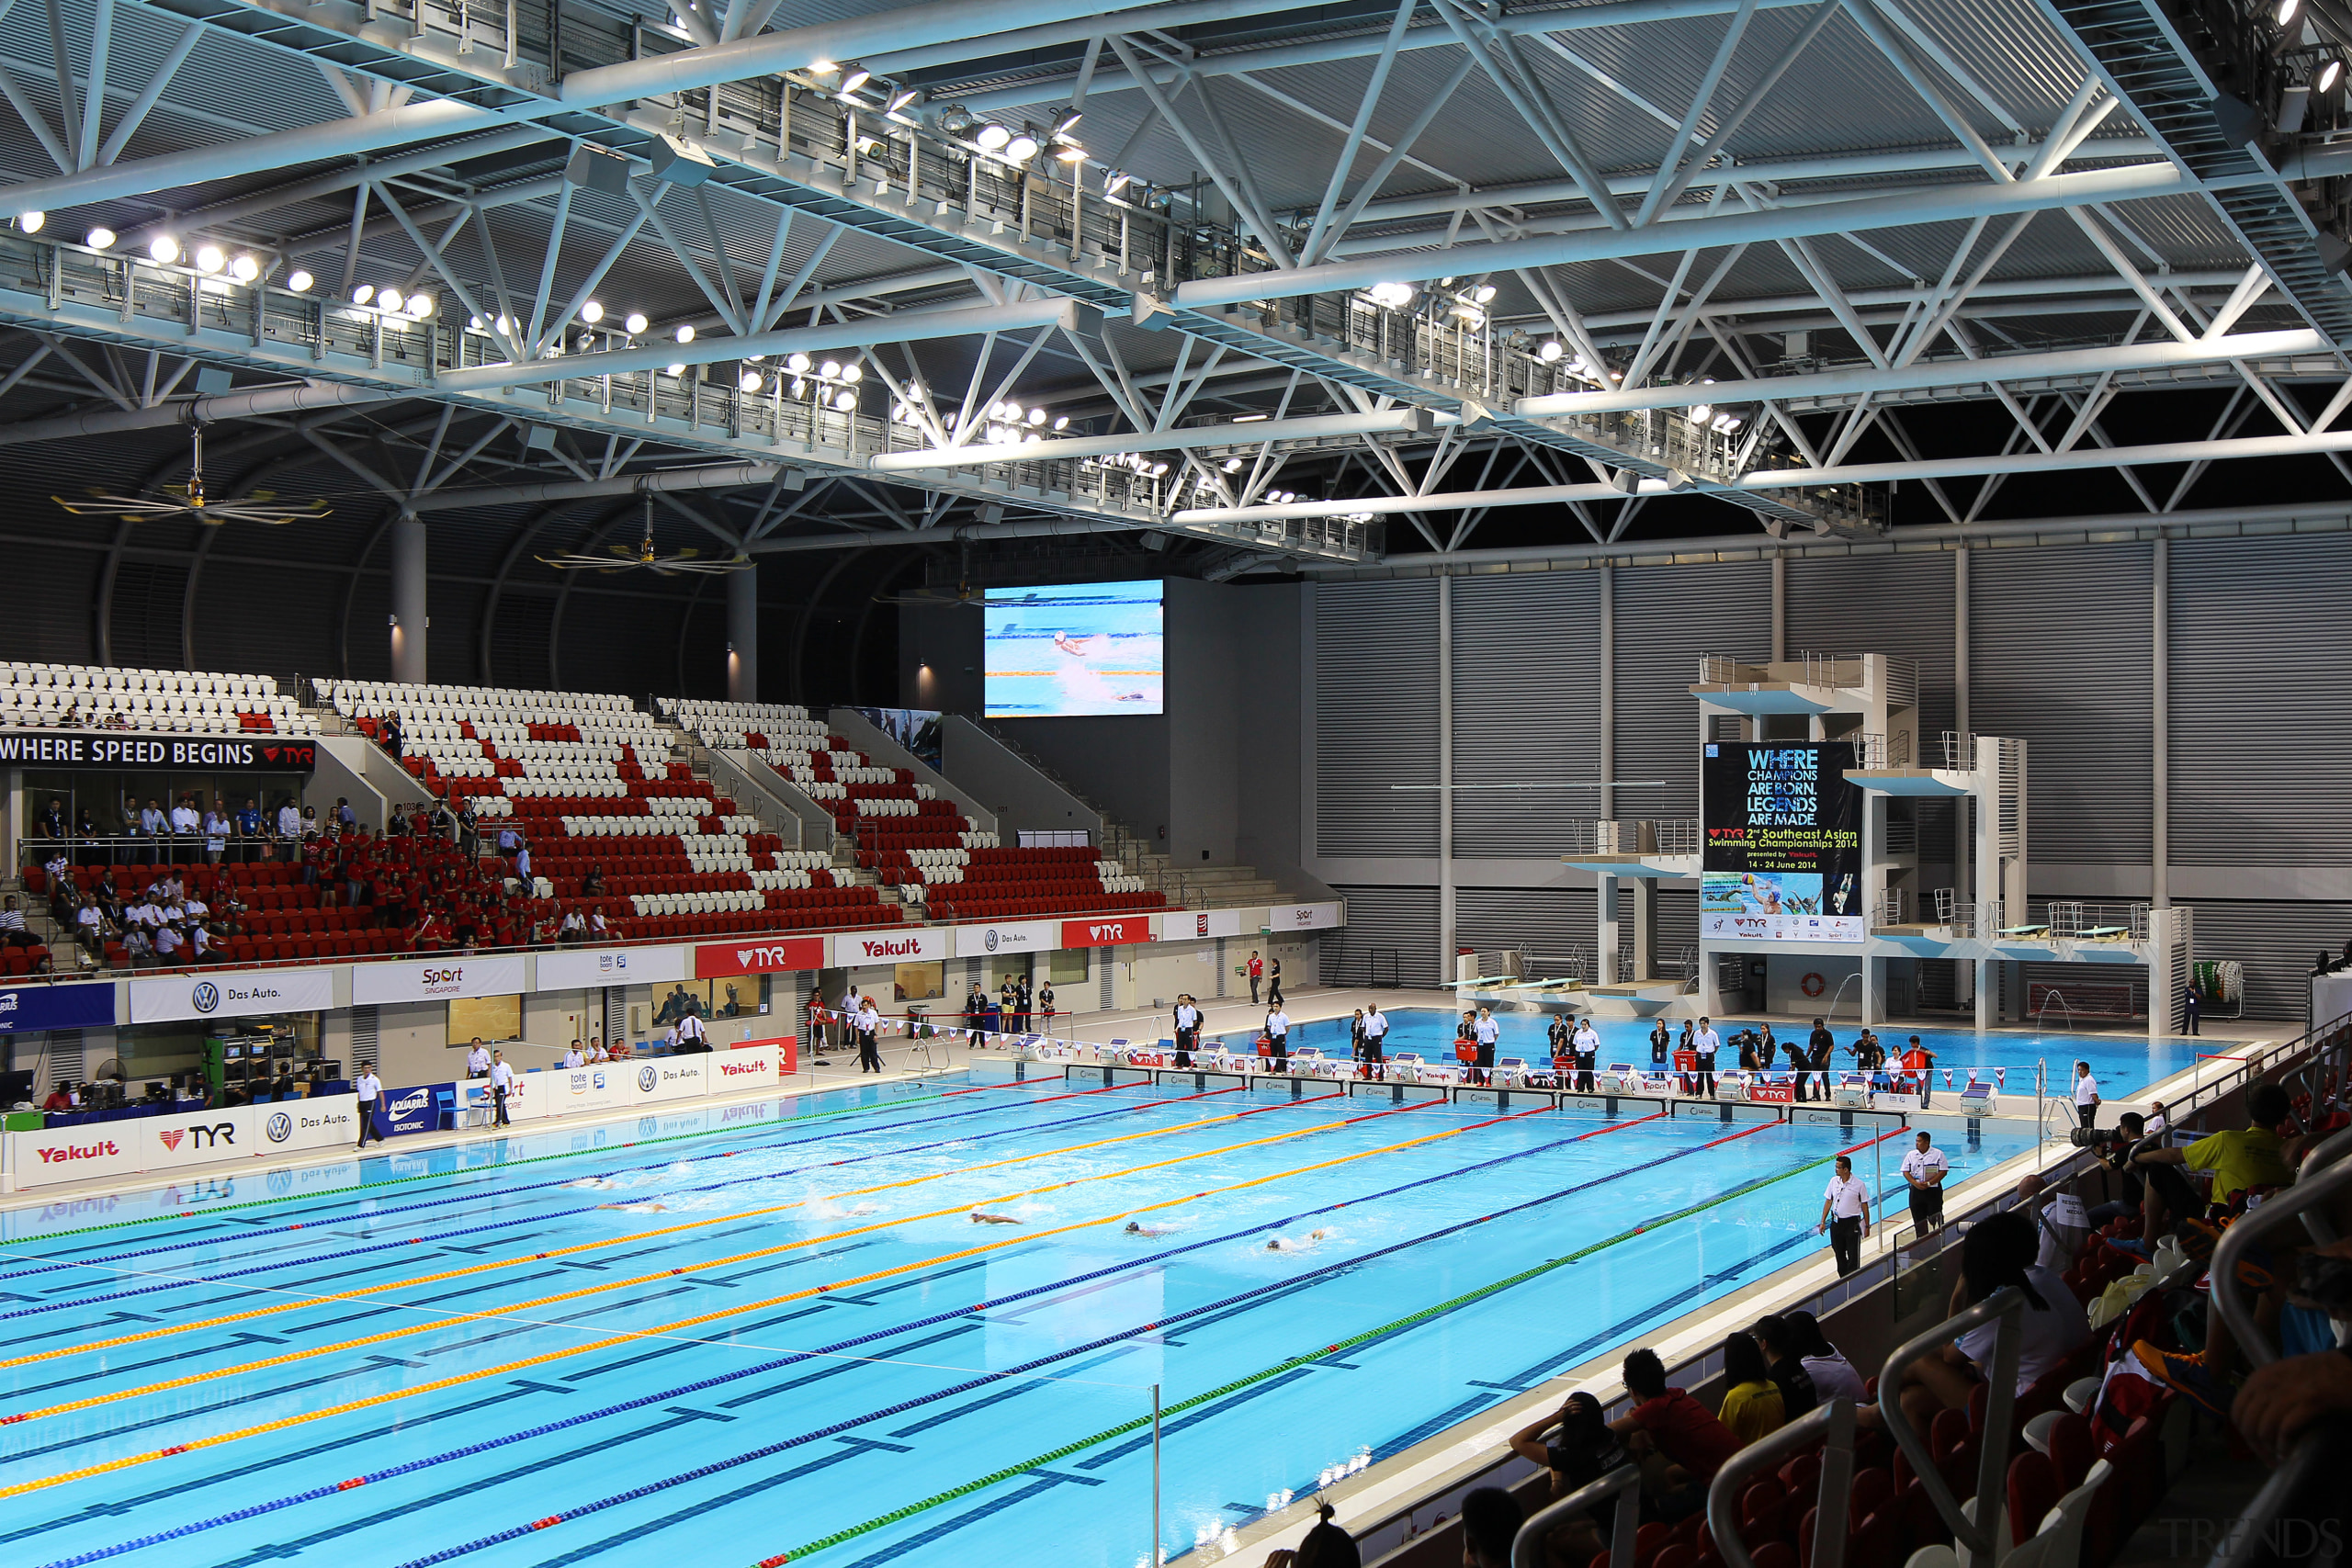 The OCBC Aquatic Centre was designed by Arup arena, championship, competition, competition event, indoor games and sports, leisure, leisure centre, recreation, sport venue, sports, structure, black, gray